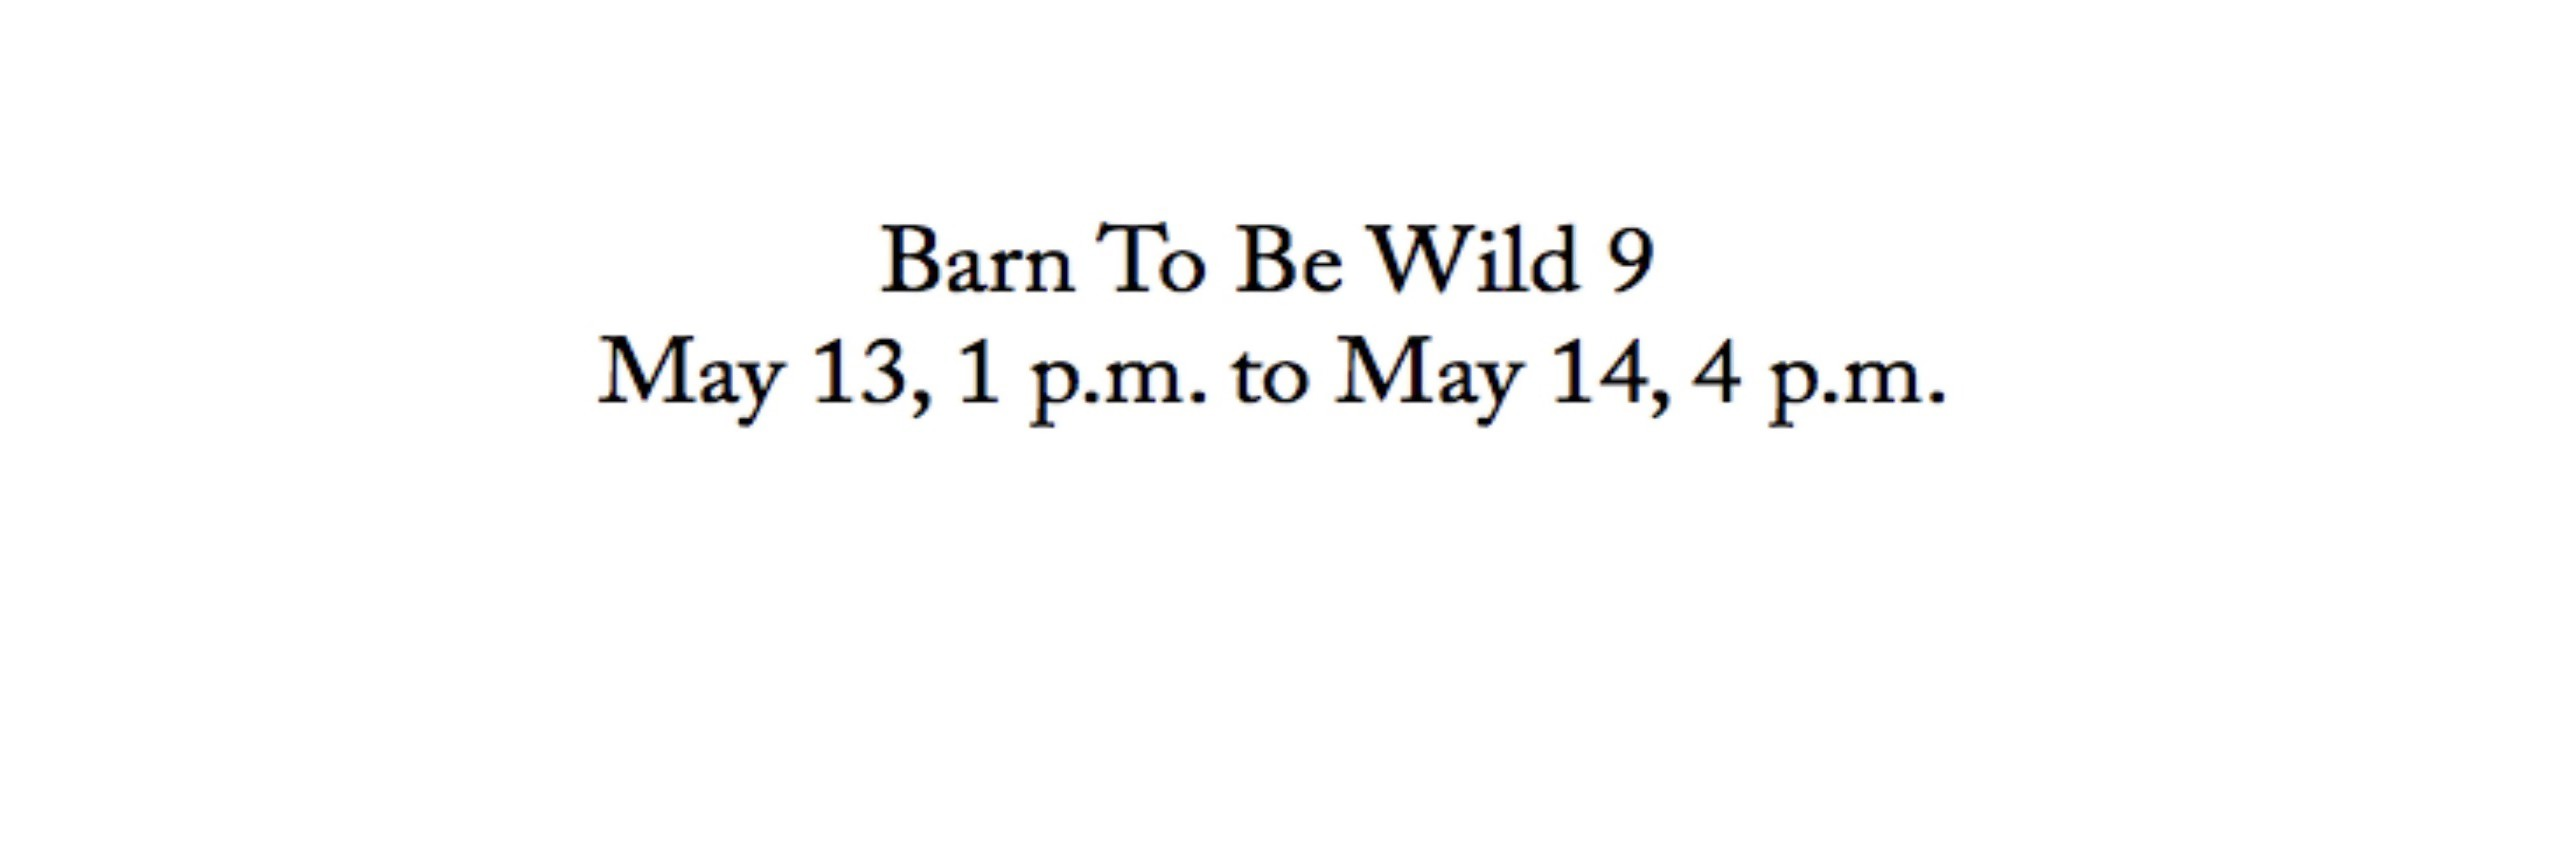 Barn To Be Wild 8